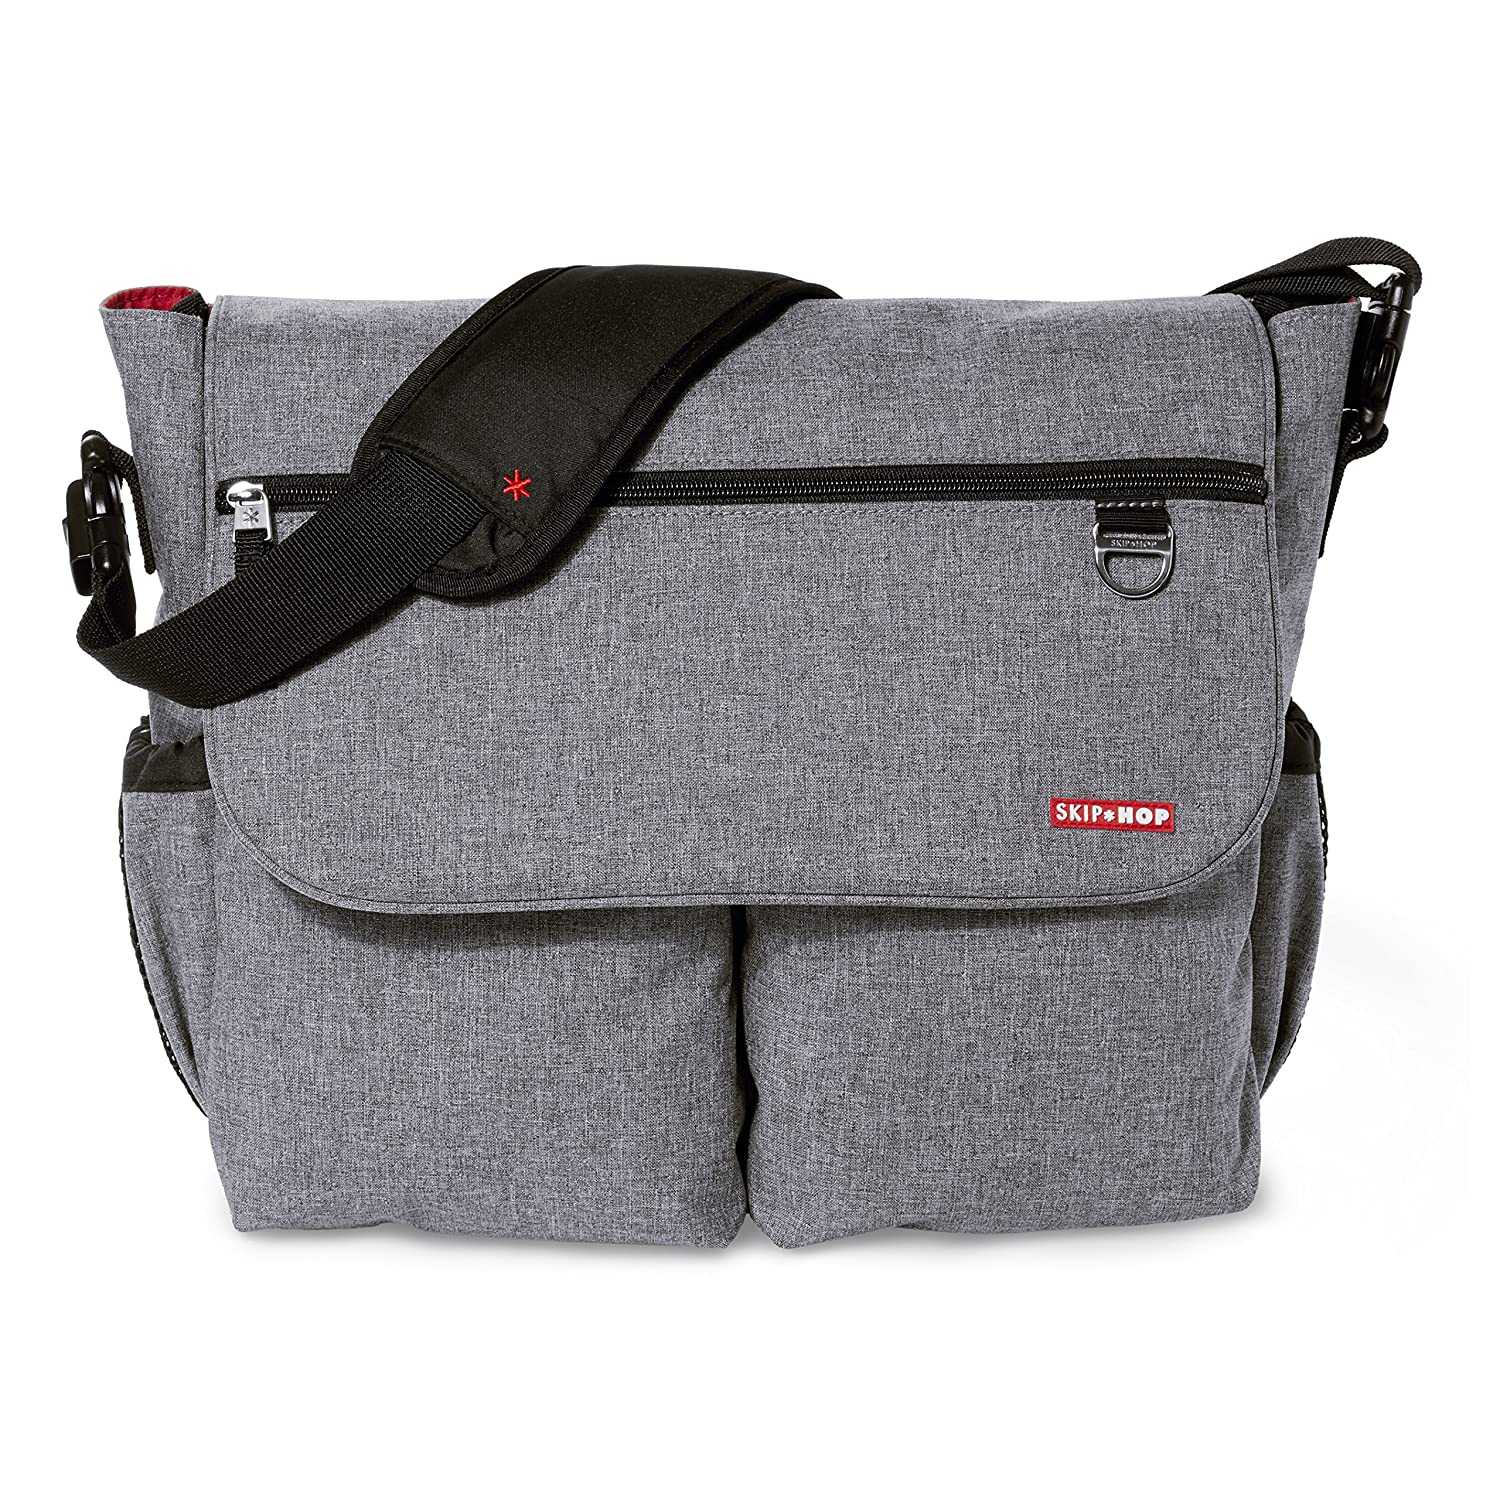 Top 5 Best Diaper Bags for Dads Reviews in 2019 2